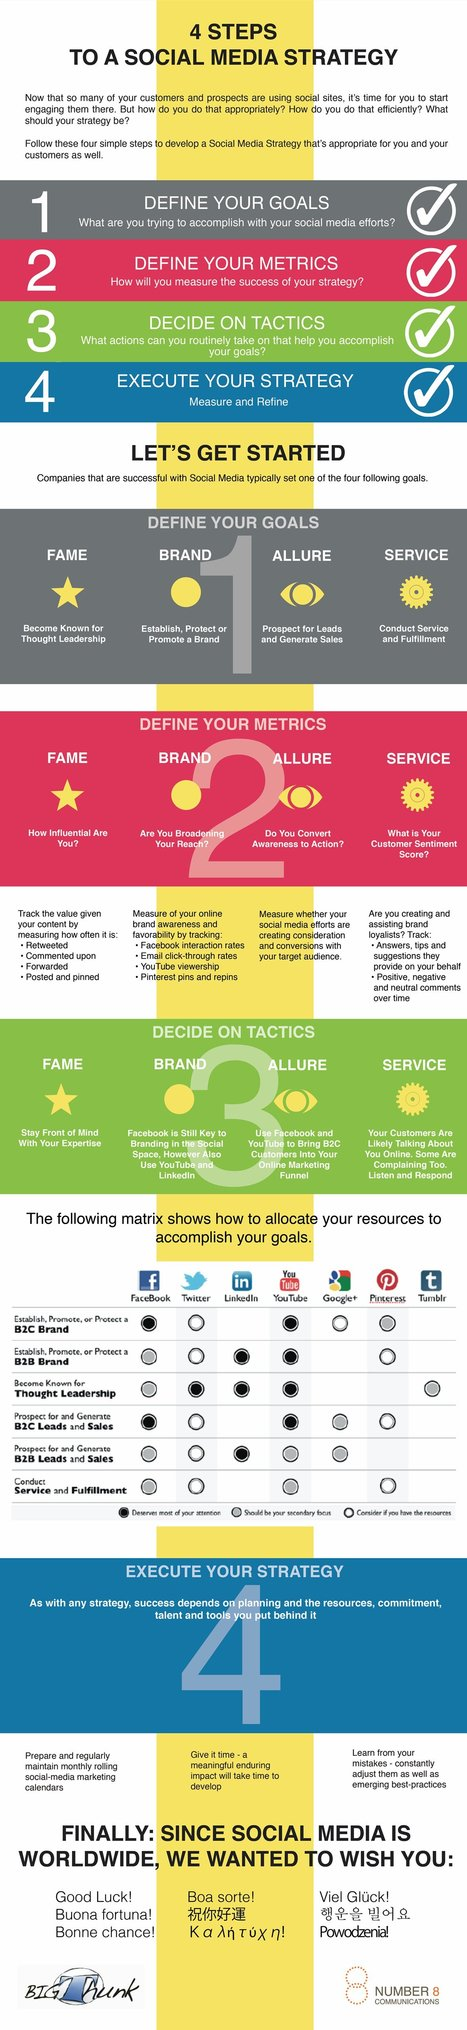 Infographic: The 4 Steps to Social Media Marketing | All things data, digital and designed | Scoop.it